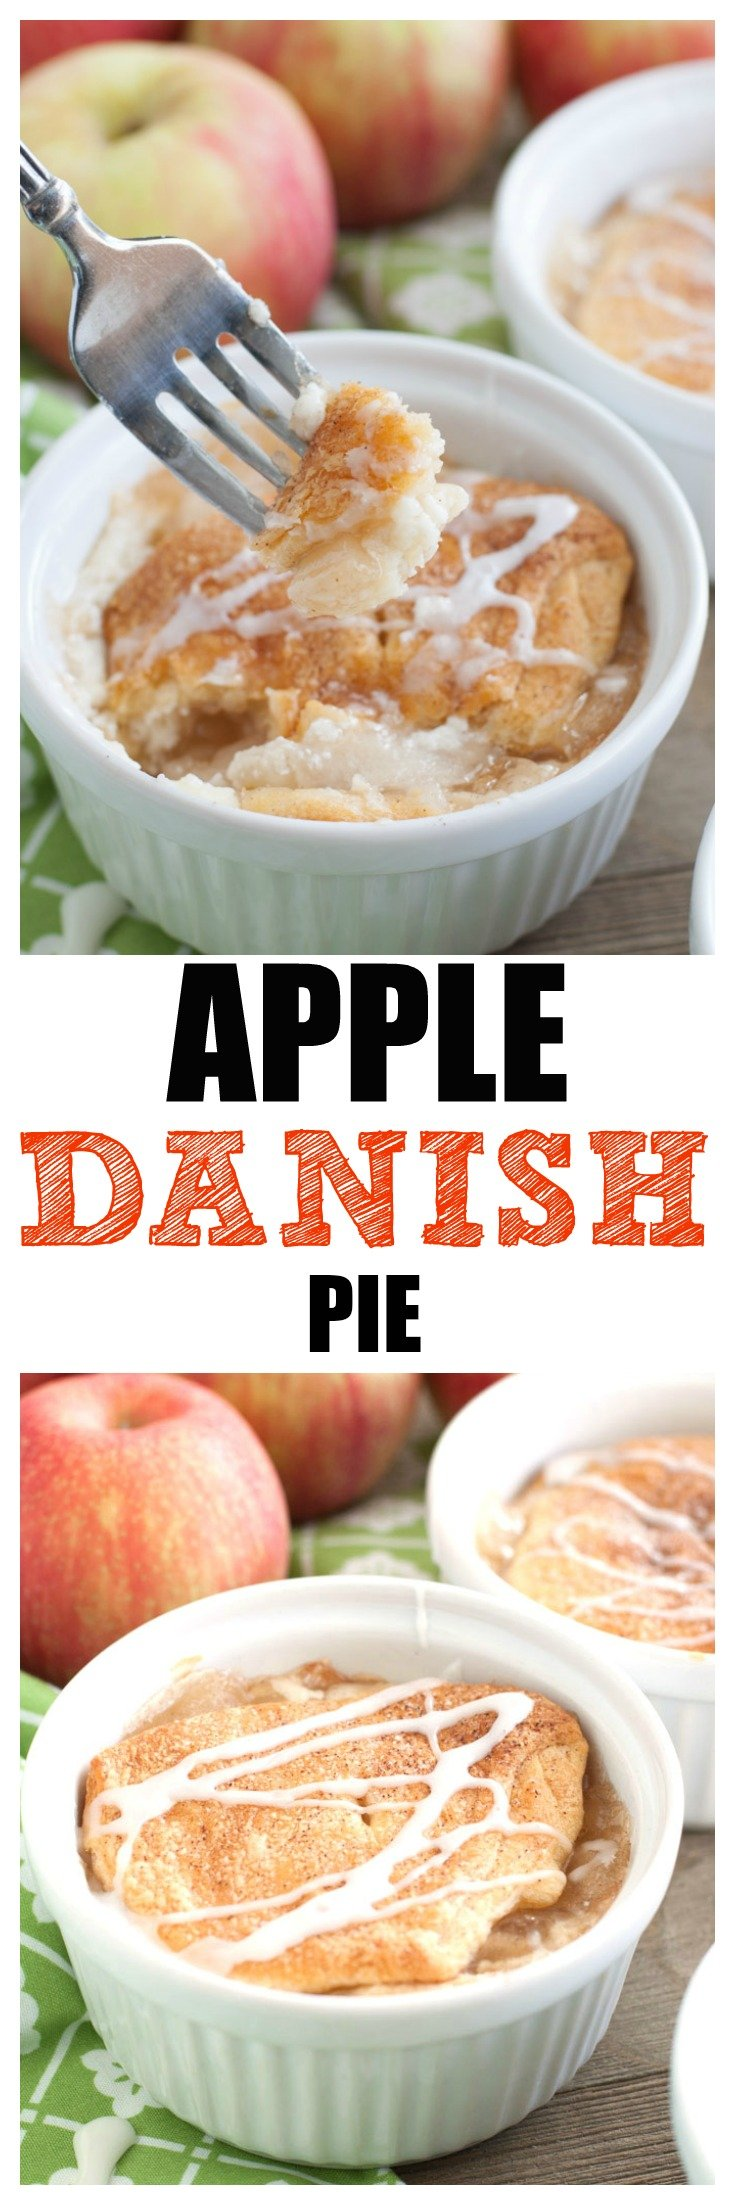 #appledesserts #applepie #appledanish Apple Danish Pie, cinnamon sugar spiced crescent roll layered with cream cheese, apple pie filling and topped with icing.